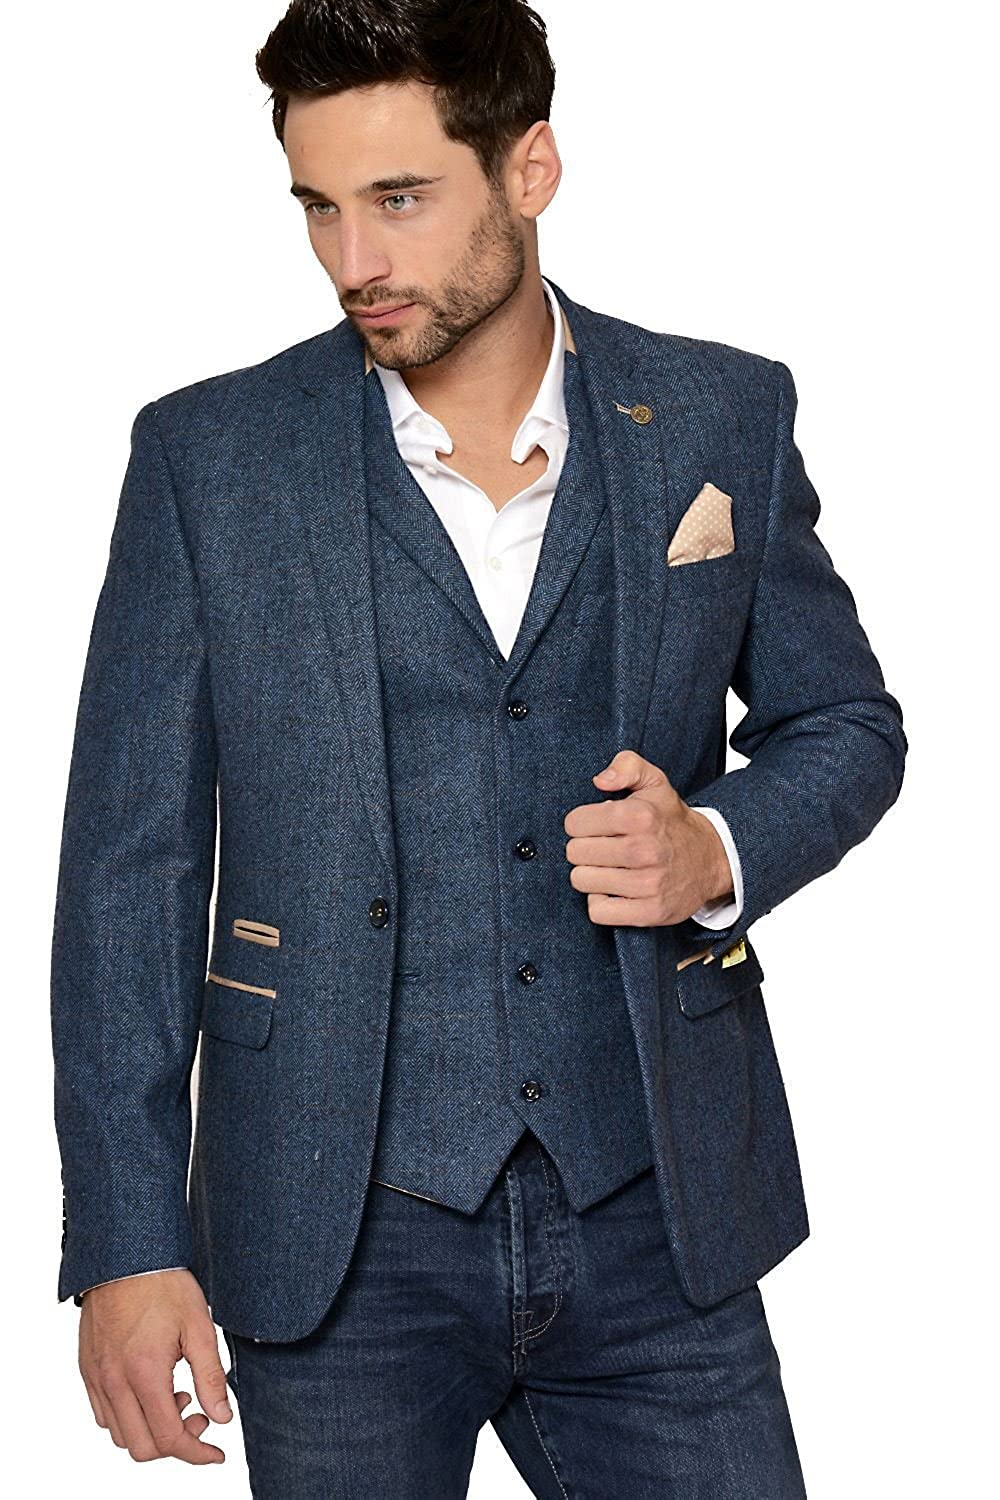 Marc Darcy Mens Designer Slim Fit Casual One Button Single Breasted Blue Herringbone Tweed Inspired Blazer Business Jacket (Chest Sizes 34-52) Marc Darcy London DION-BLAZER-BLUE